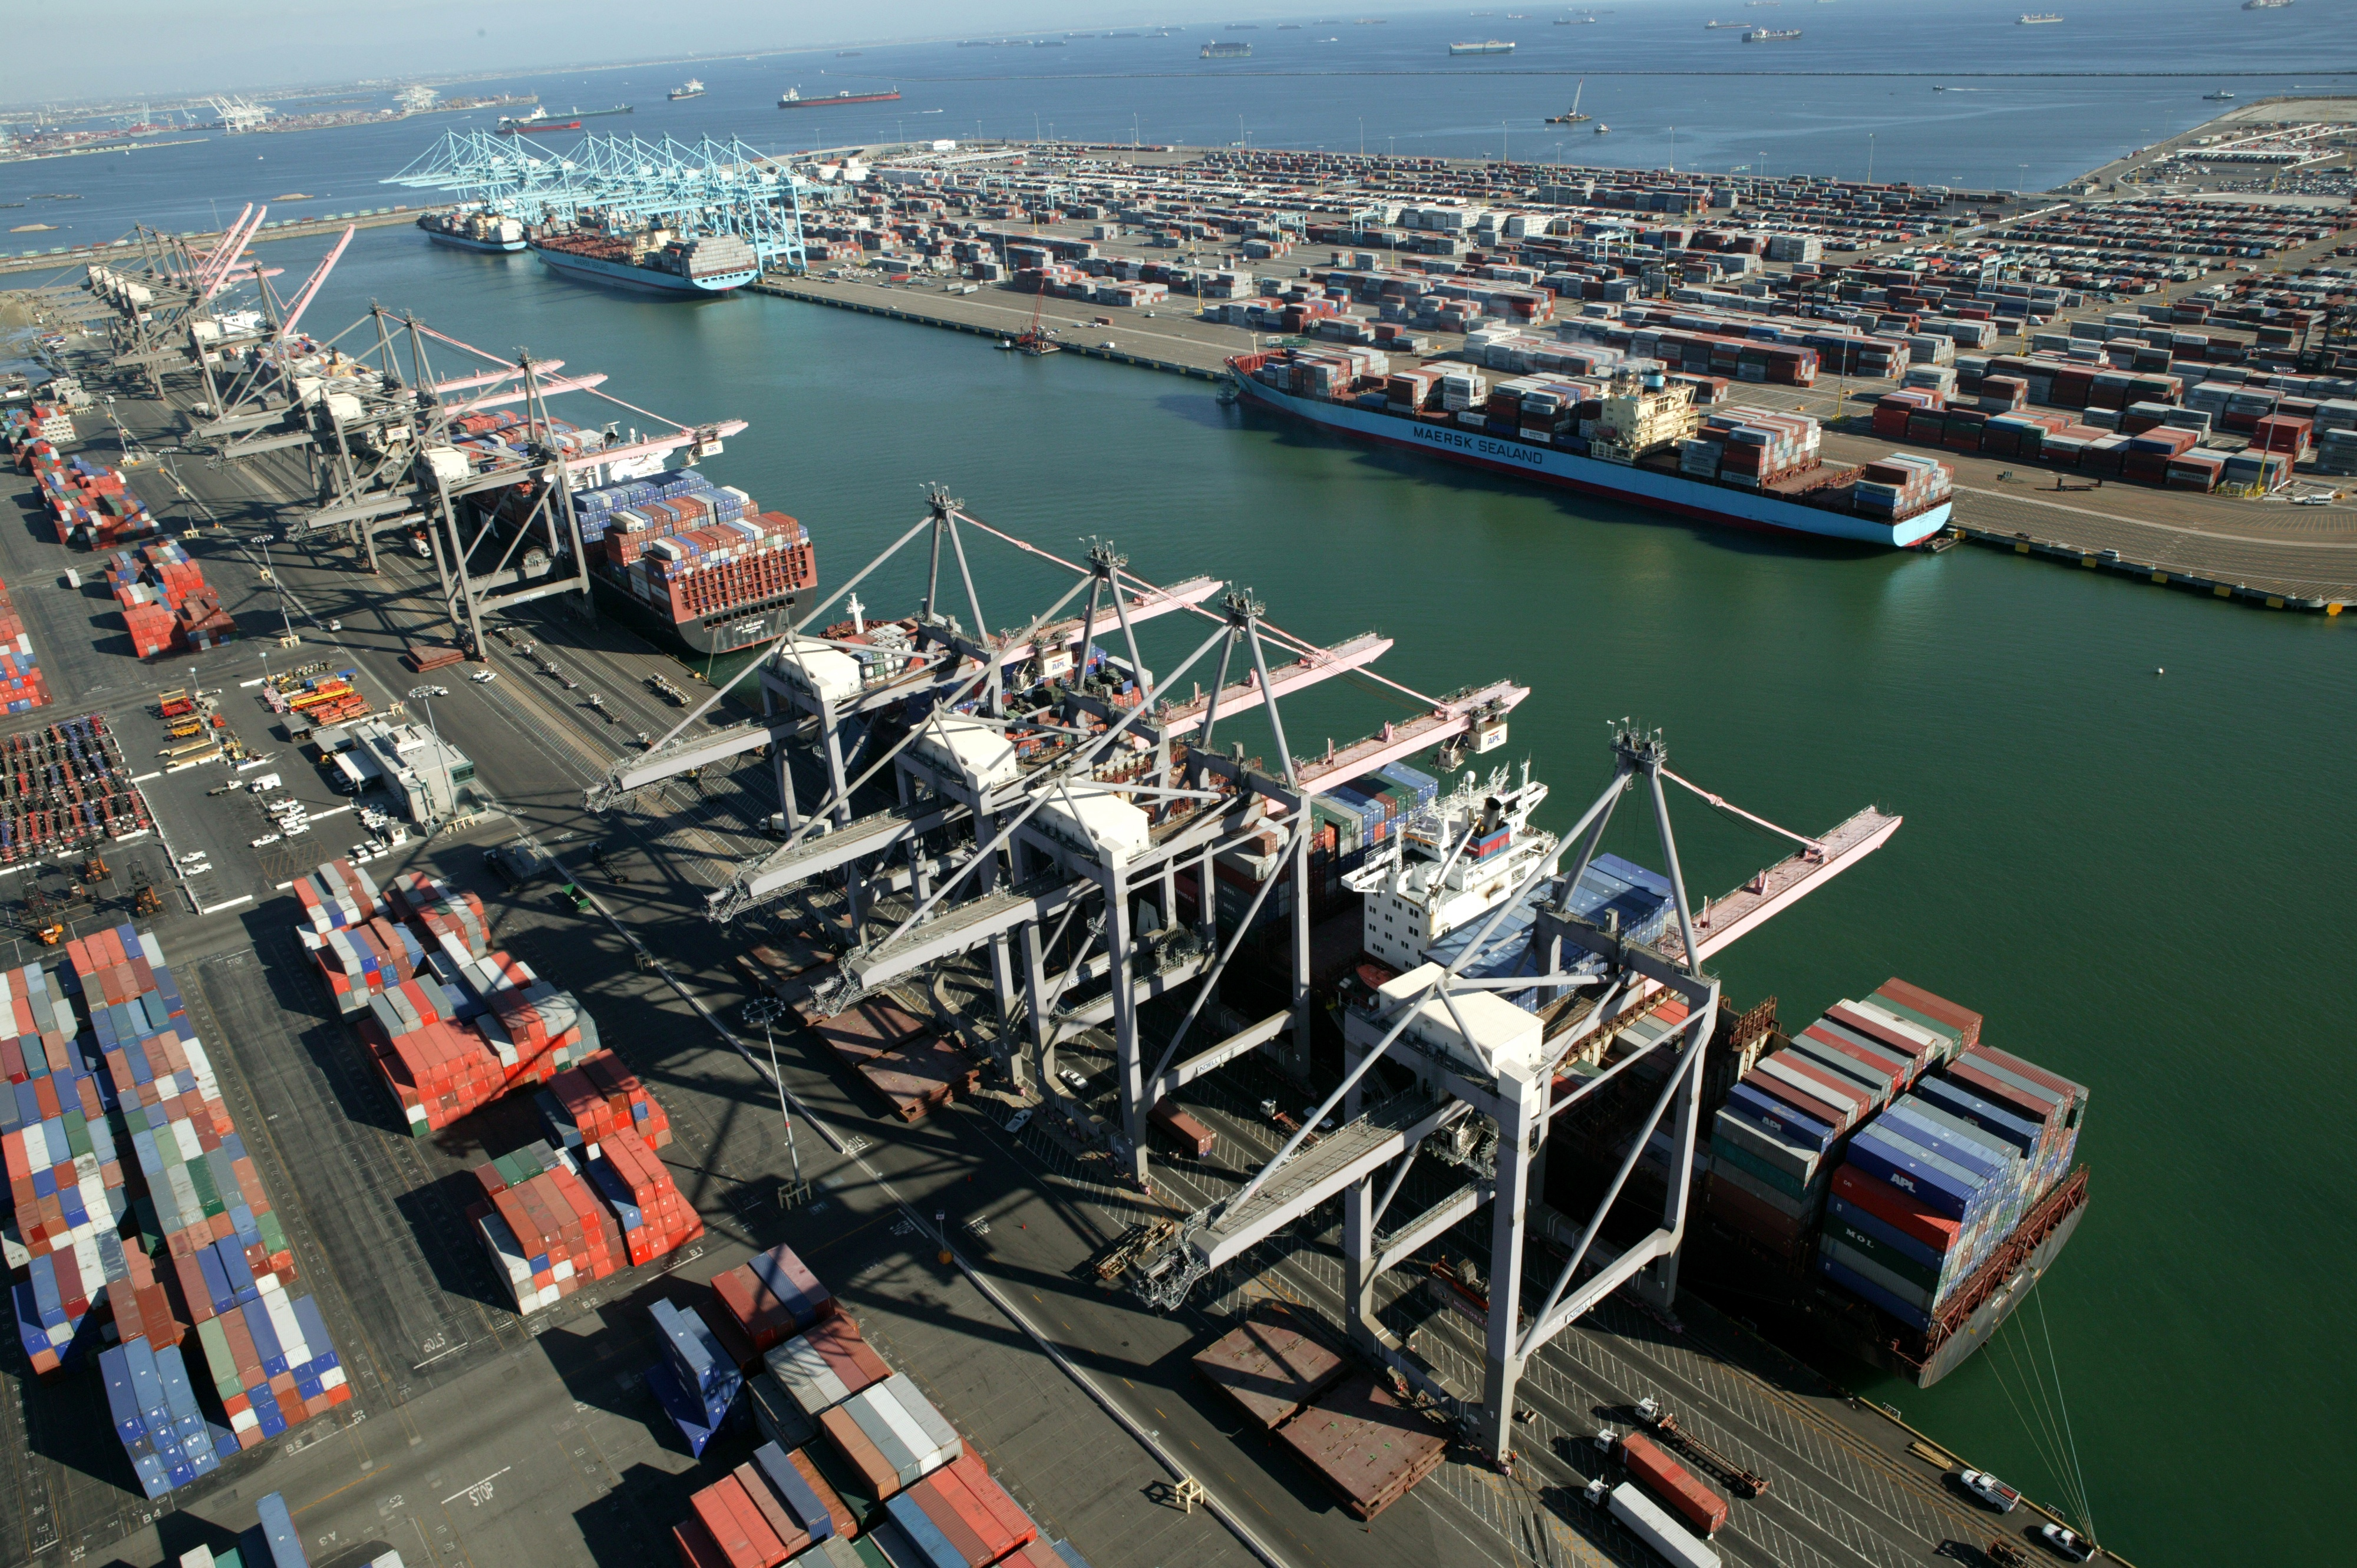 Port_of_LA_Pier 300_400 Container Terminals-1